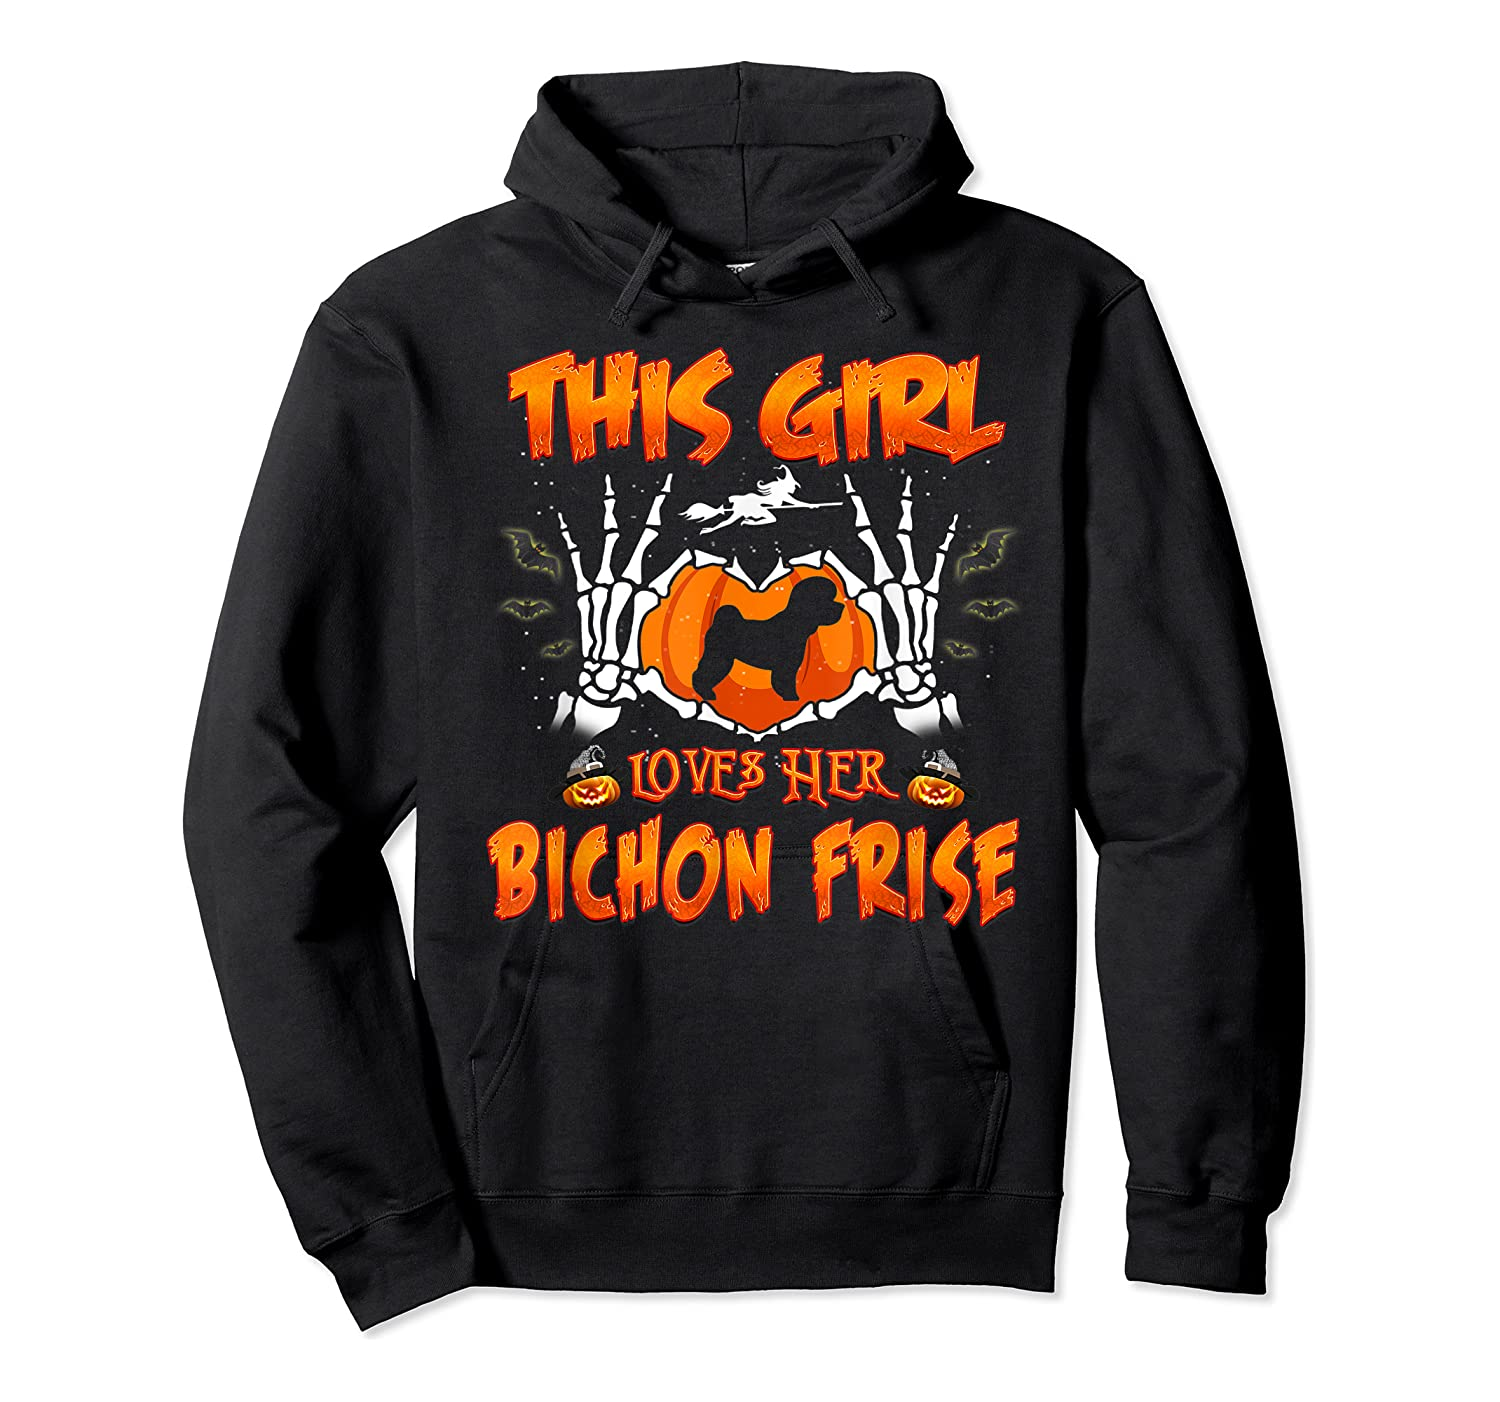 This Girl Loves Her Bichon Frise Dog Halloween Costume Shirts Unisex Pullover Hoodie